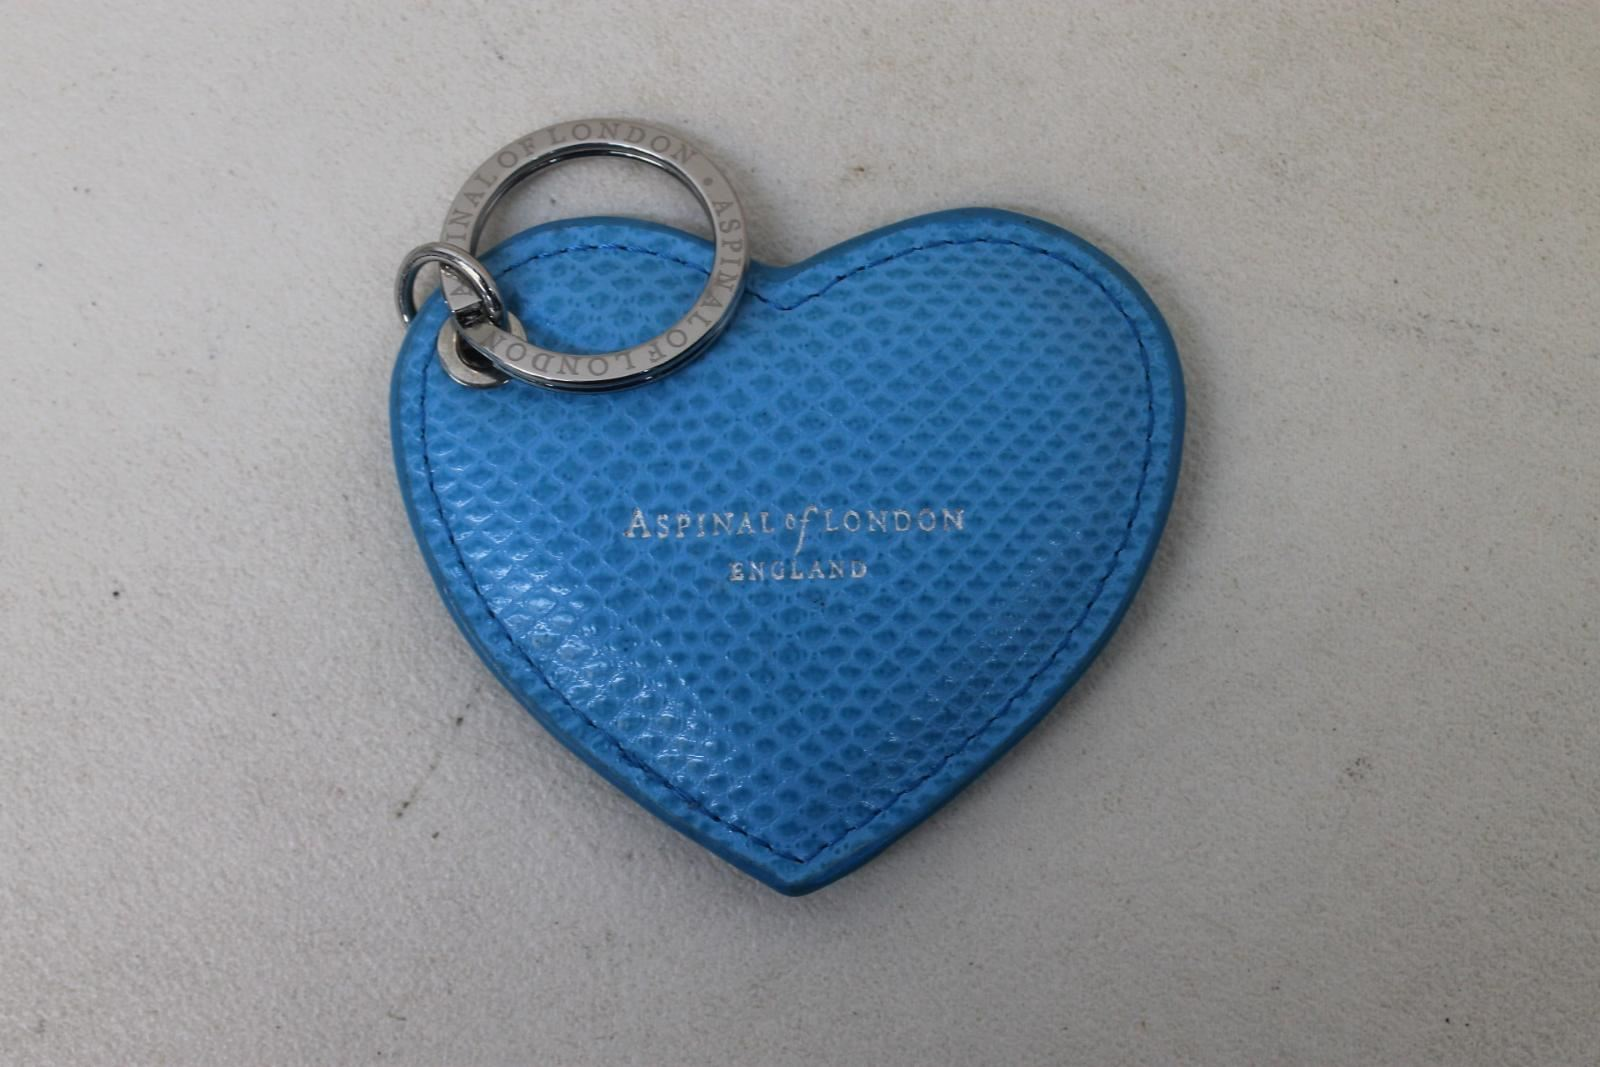 ASPINAL-OF-LONDON-Ladies-Blue-Lizard-Print-Heart-Keyring-Charm-w-Initials-NEW